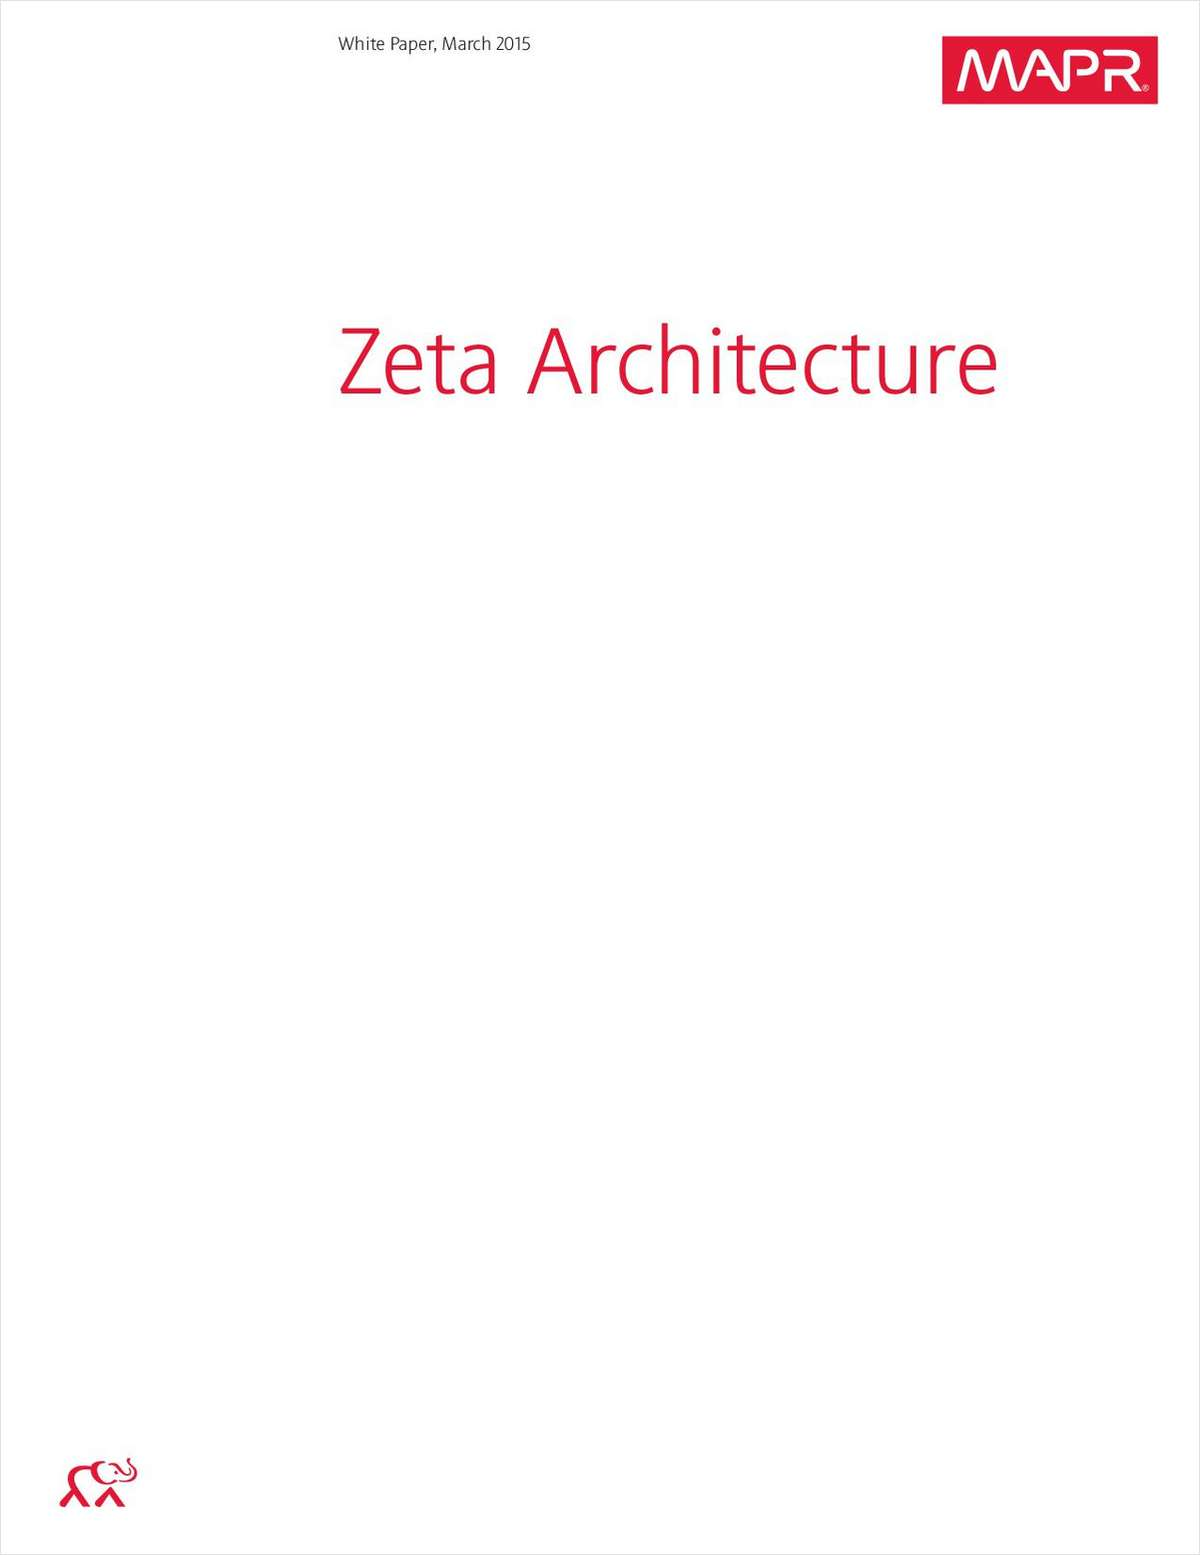 Zeta Architecture: Simplifying Business Processes